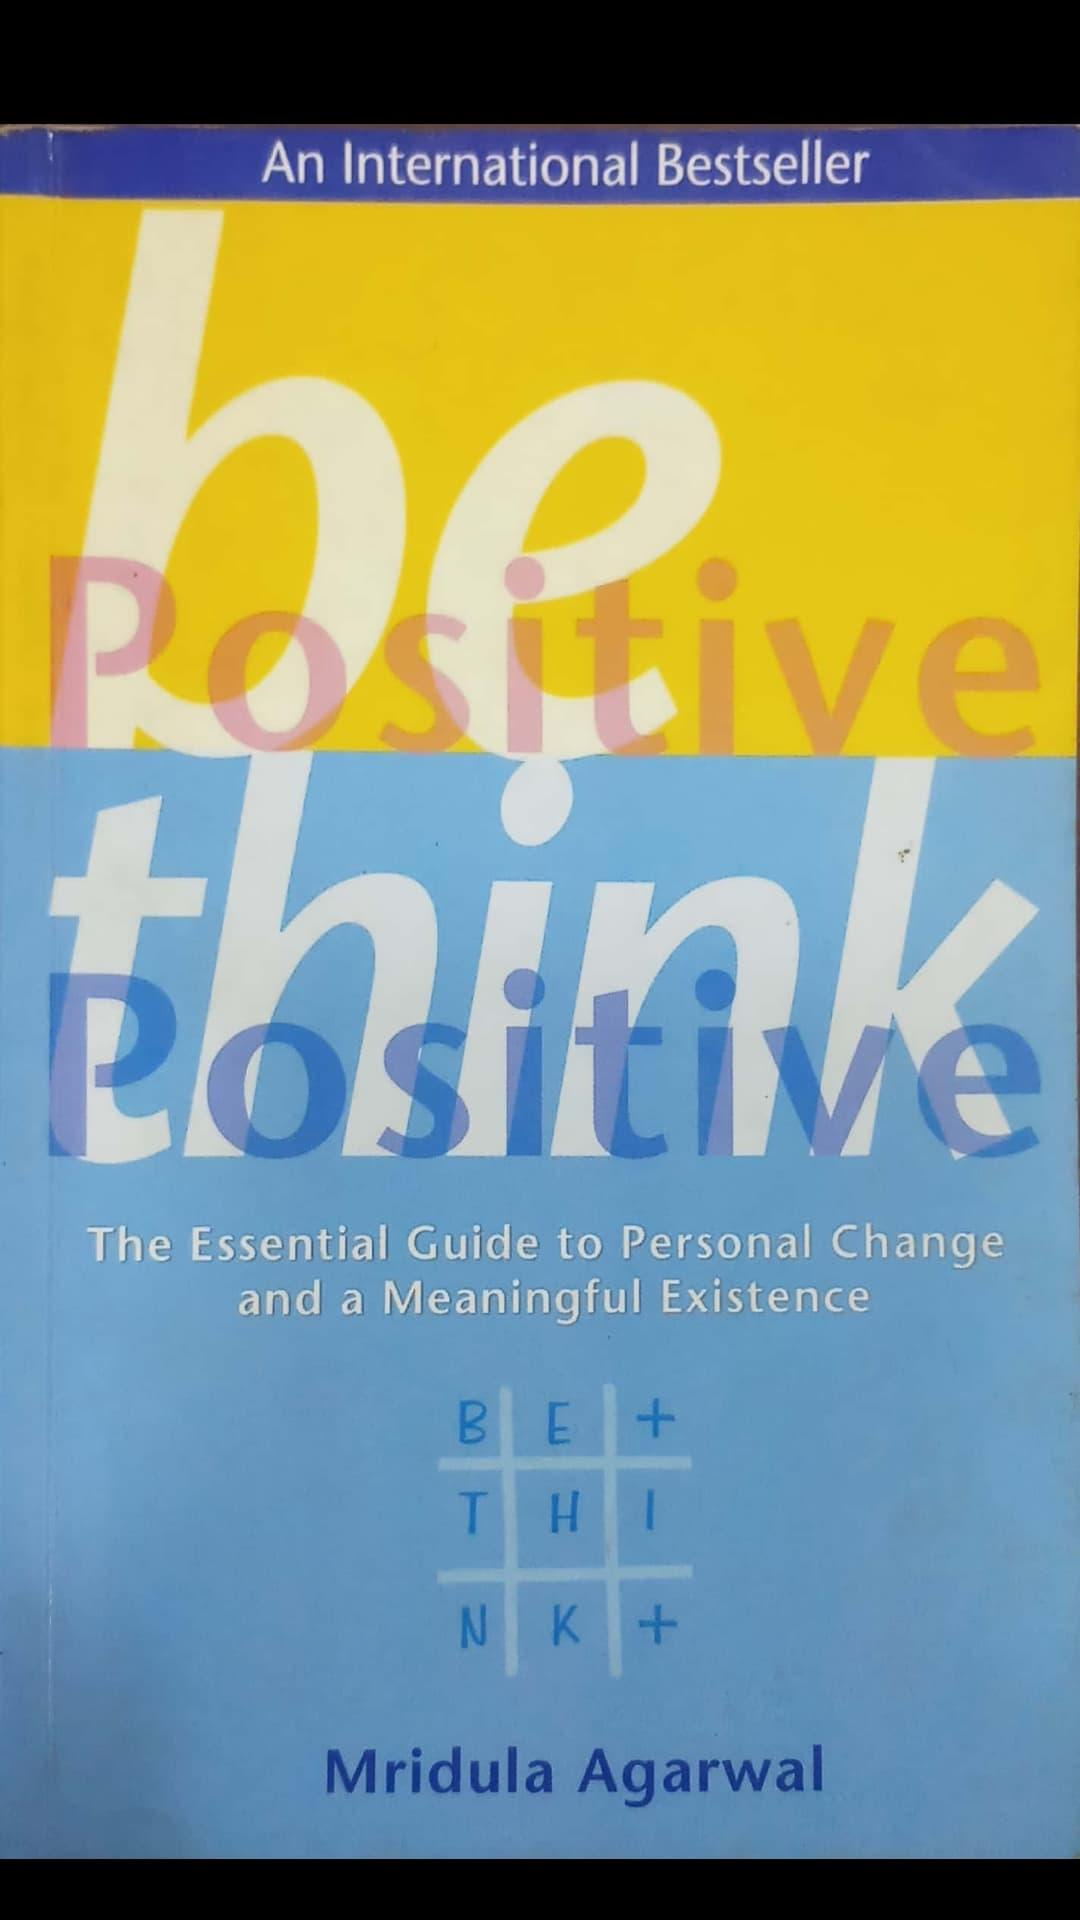 ppbs-8-be-positive-think-positive